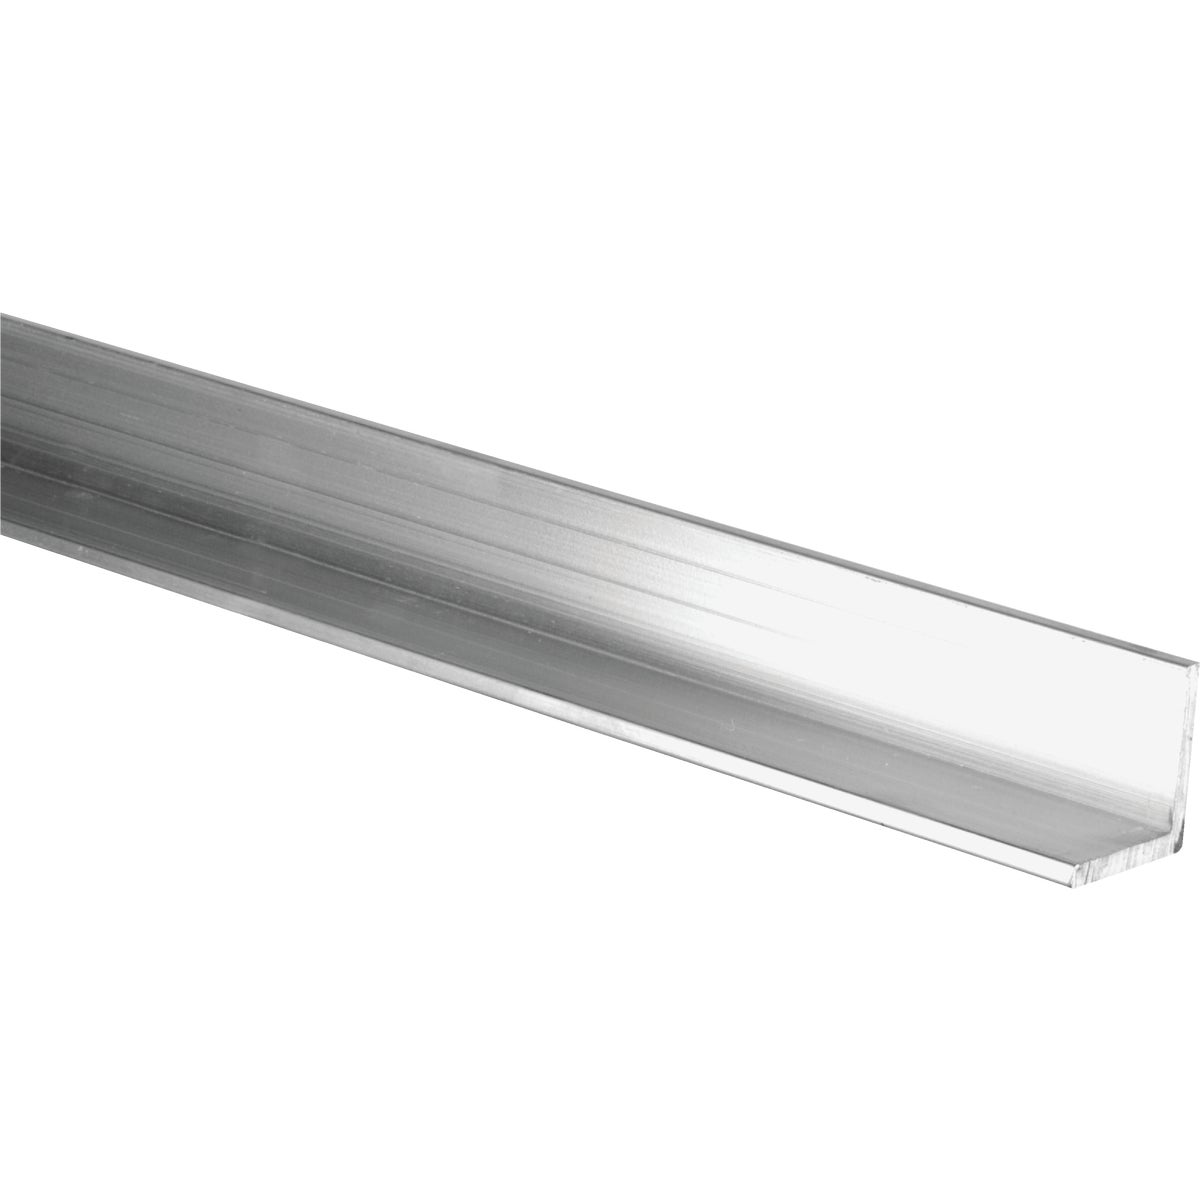 National Mfg. N258368 Aluminum Solid Angle